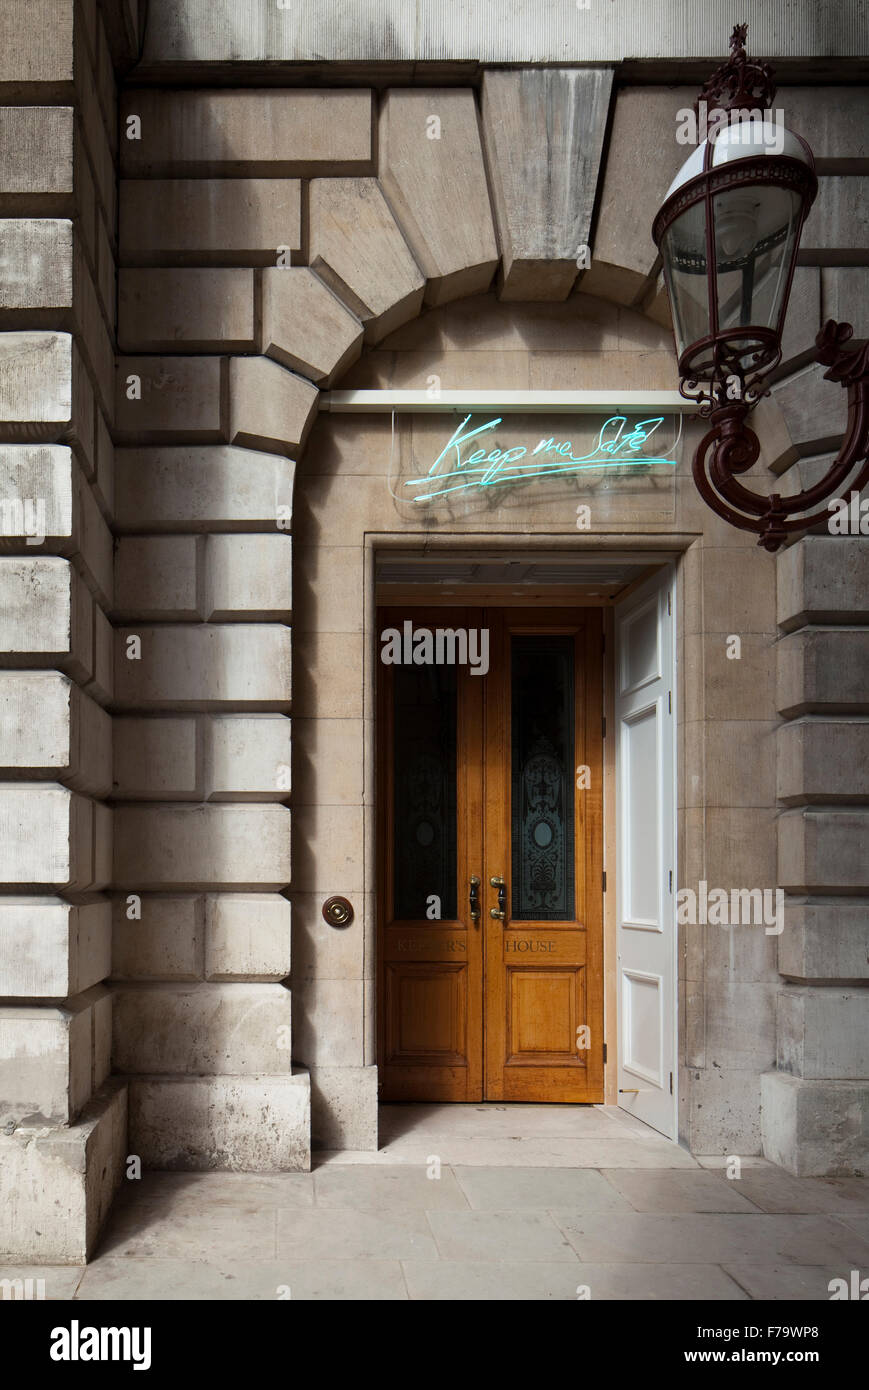 Keepers House, Royal Academy, London. Entrance with Tracy Emin Neon. Reads ' Keep me Safe'. Stock Photo